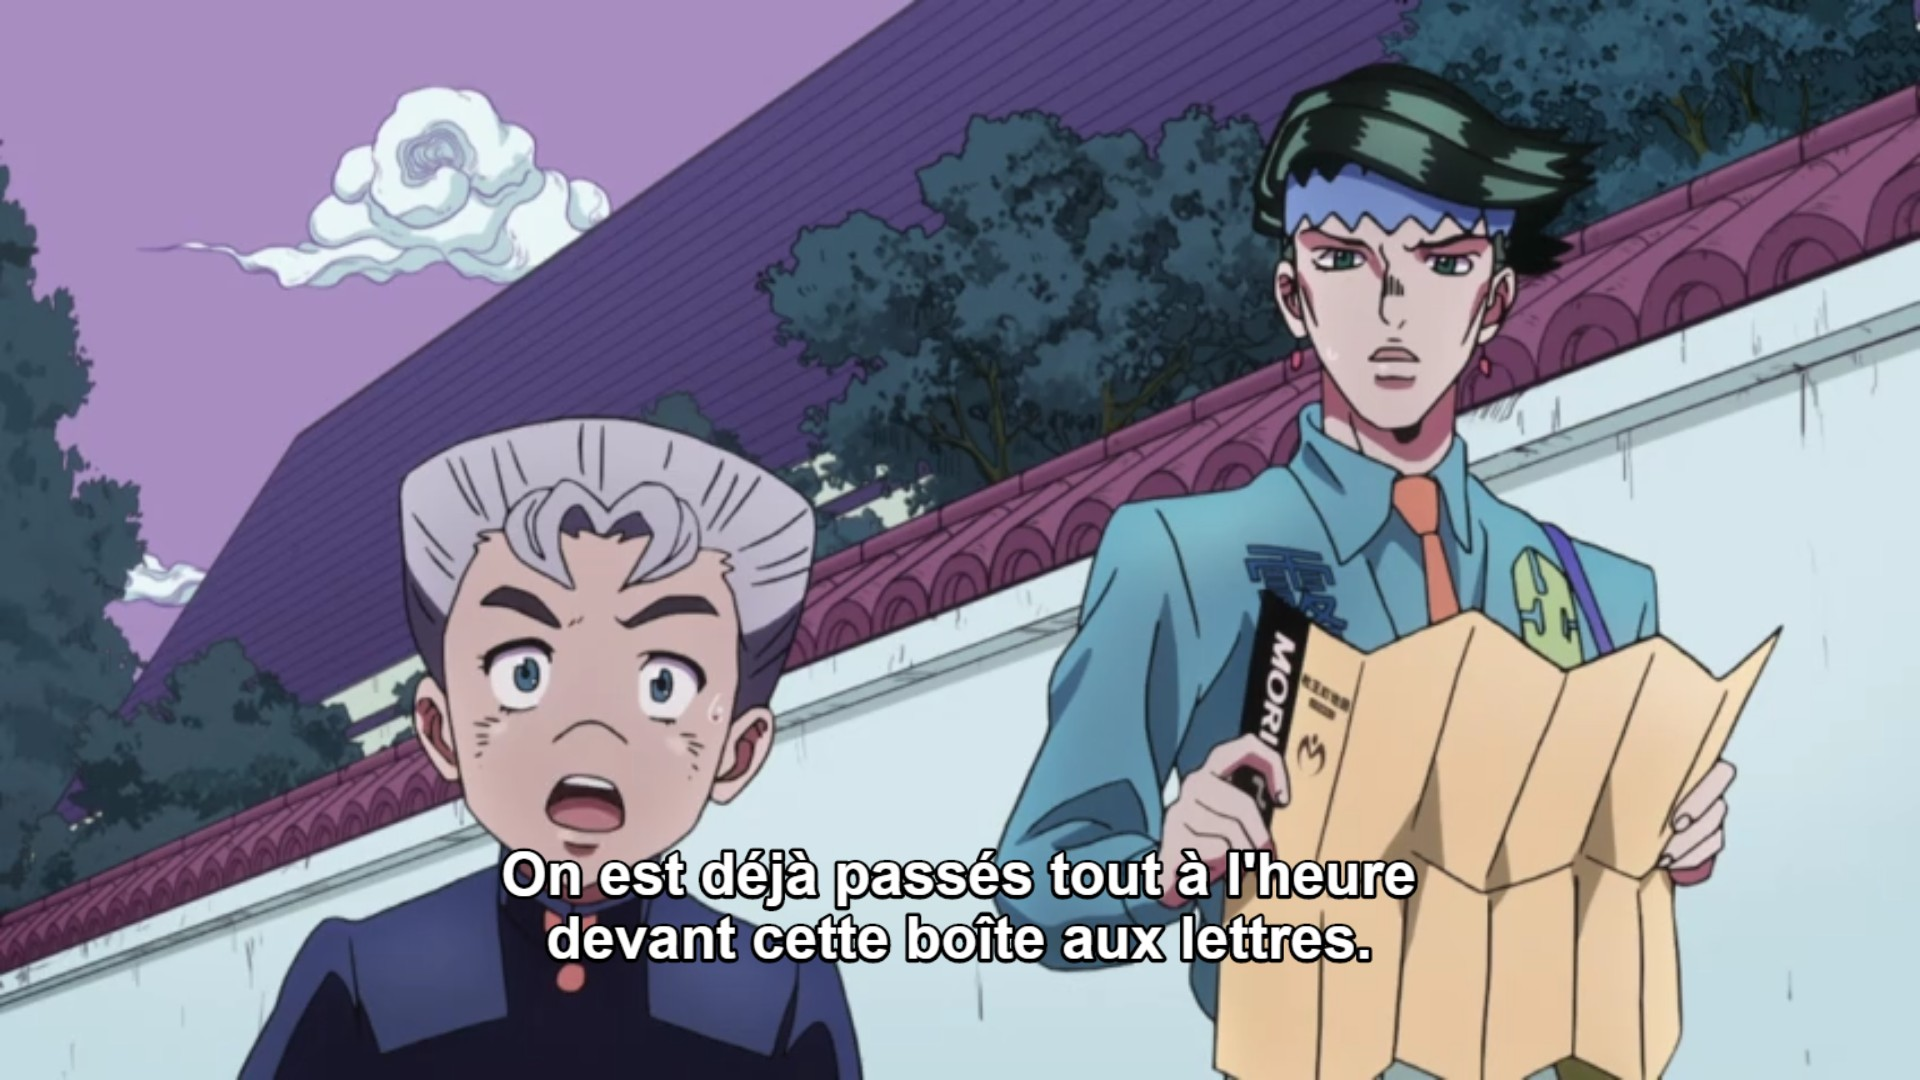 Jojo's Bizarre Adventure Saison 3 Diamond is Unbreakable - Épisode 17 - streaming - VOSTFR - ADN - Google Chrome_29